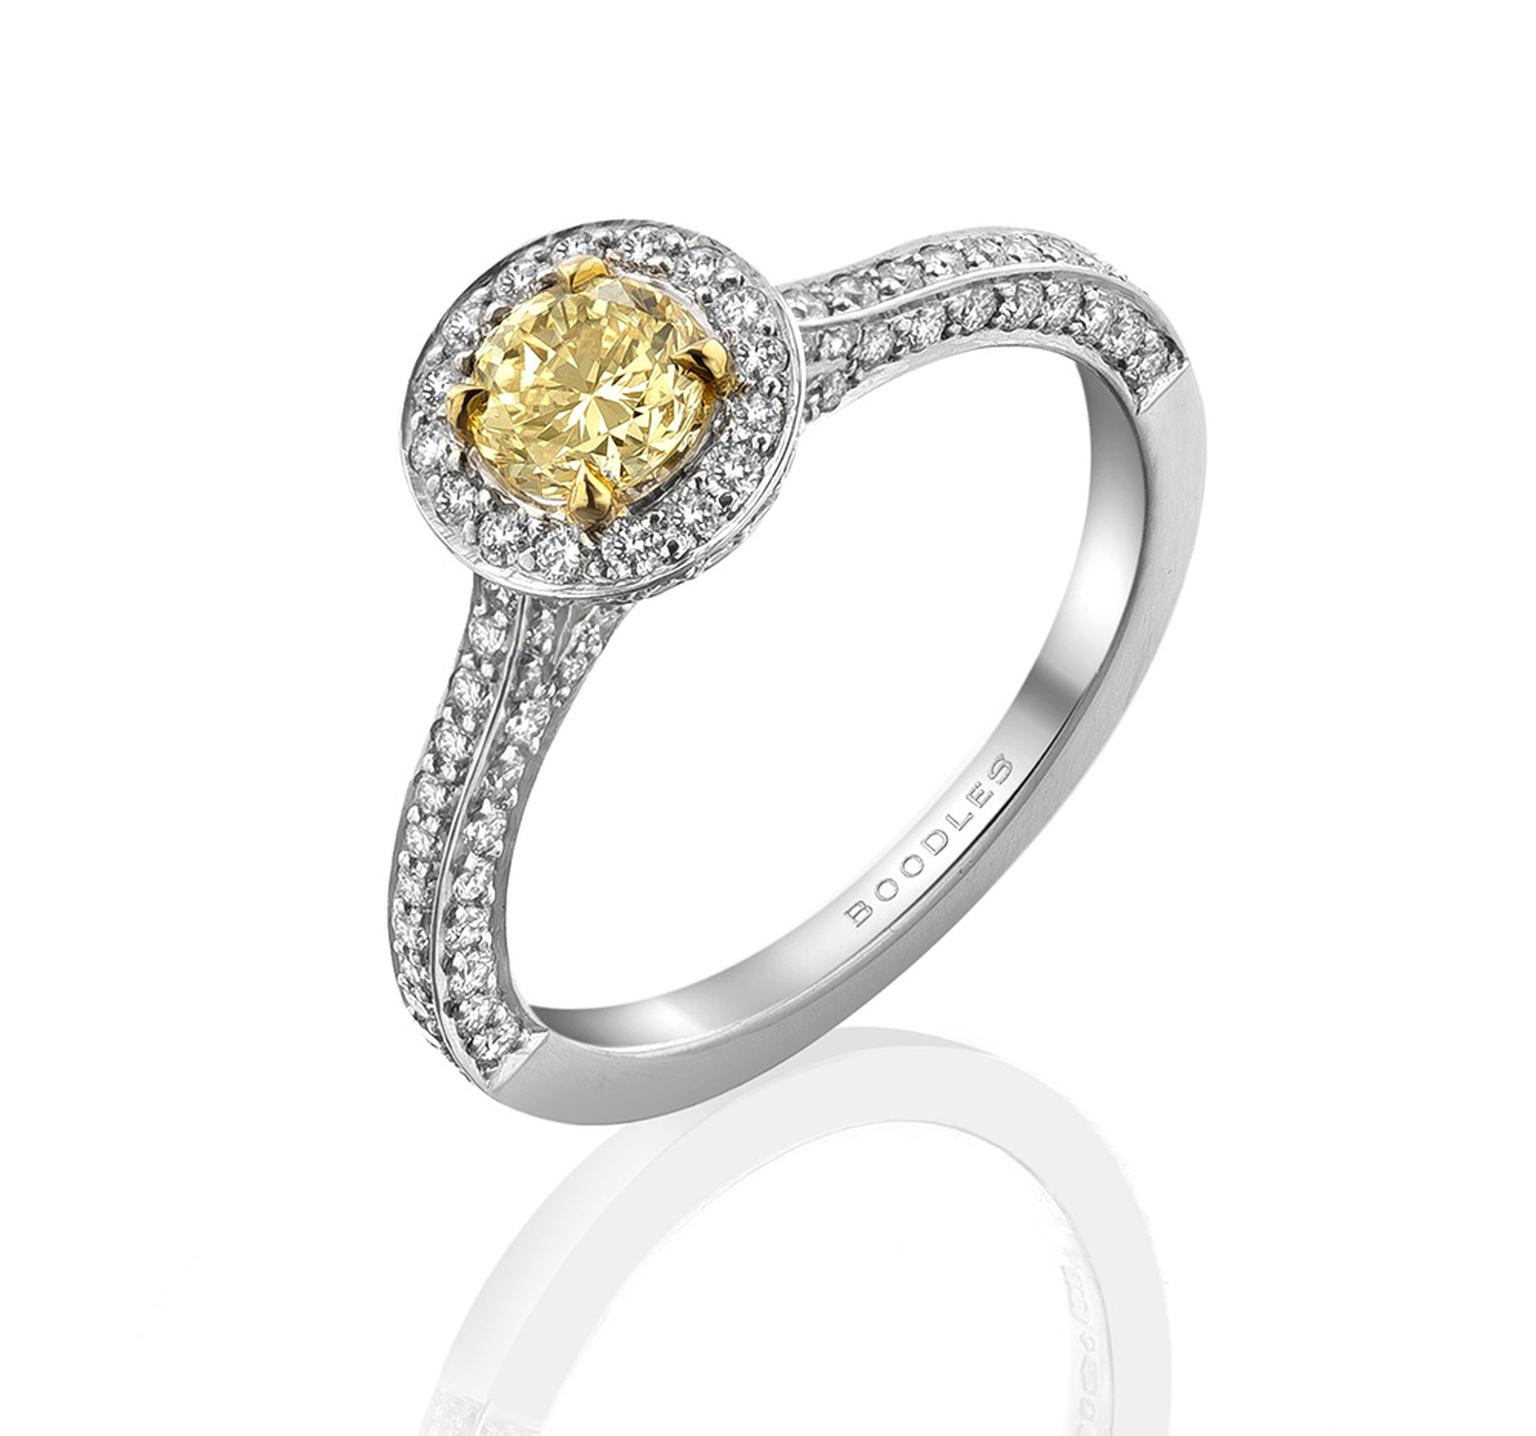 Boodles Vintage Classic yellow diamond engagement ring in platinum, set with a round-brilliant cut yellow diamond (from £8,760)